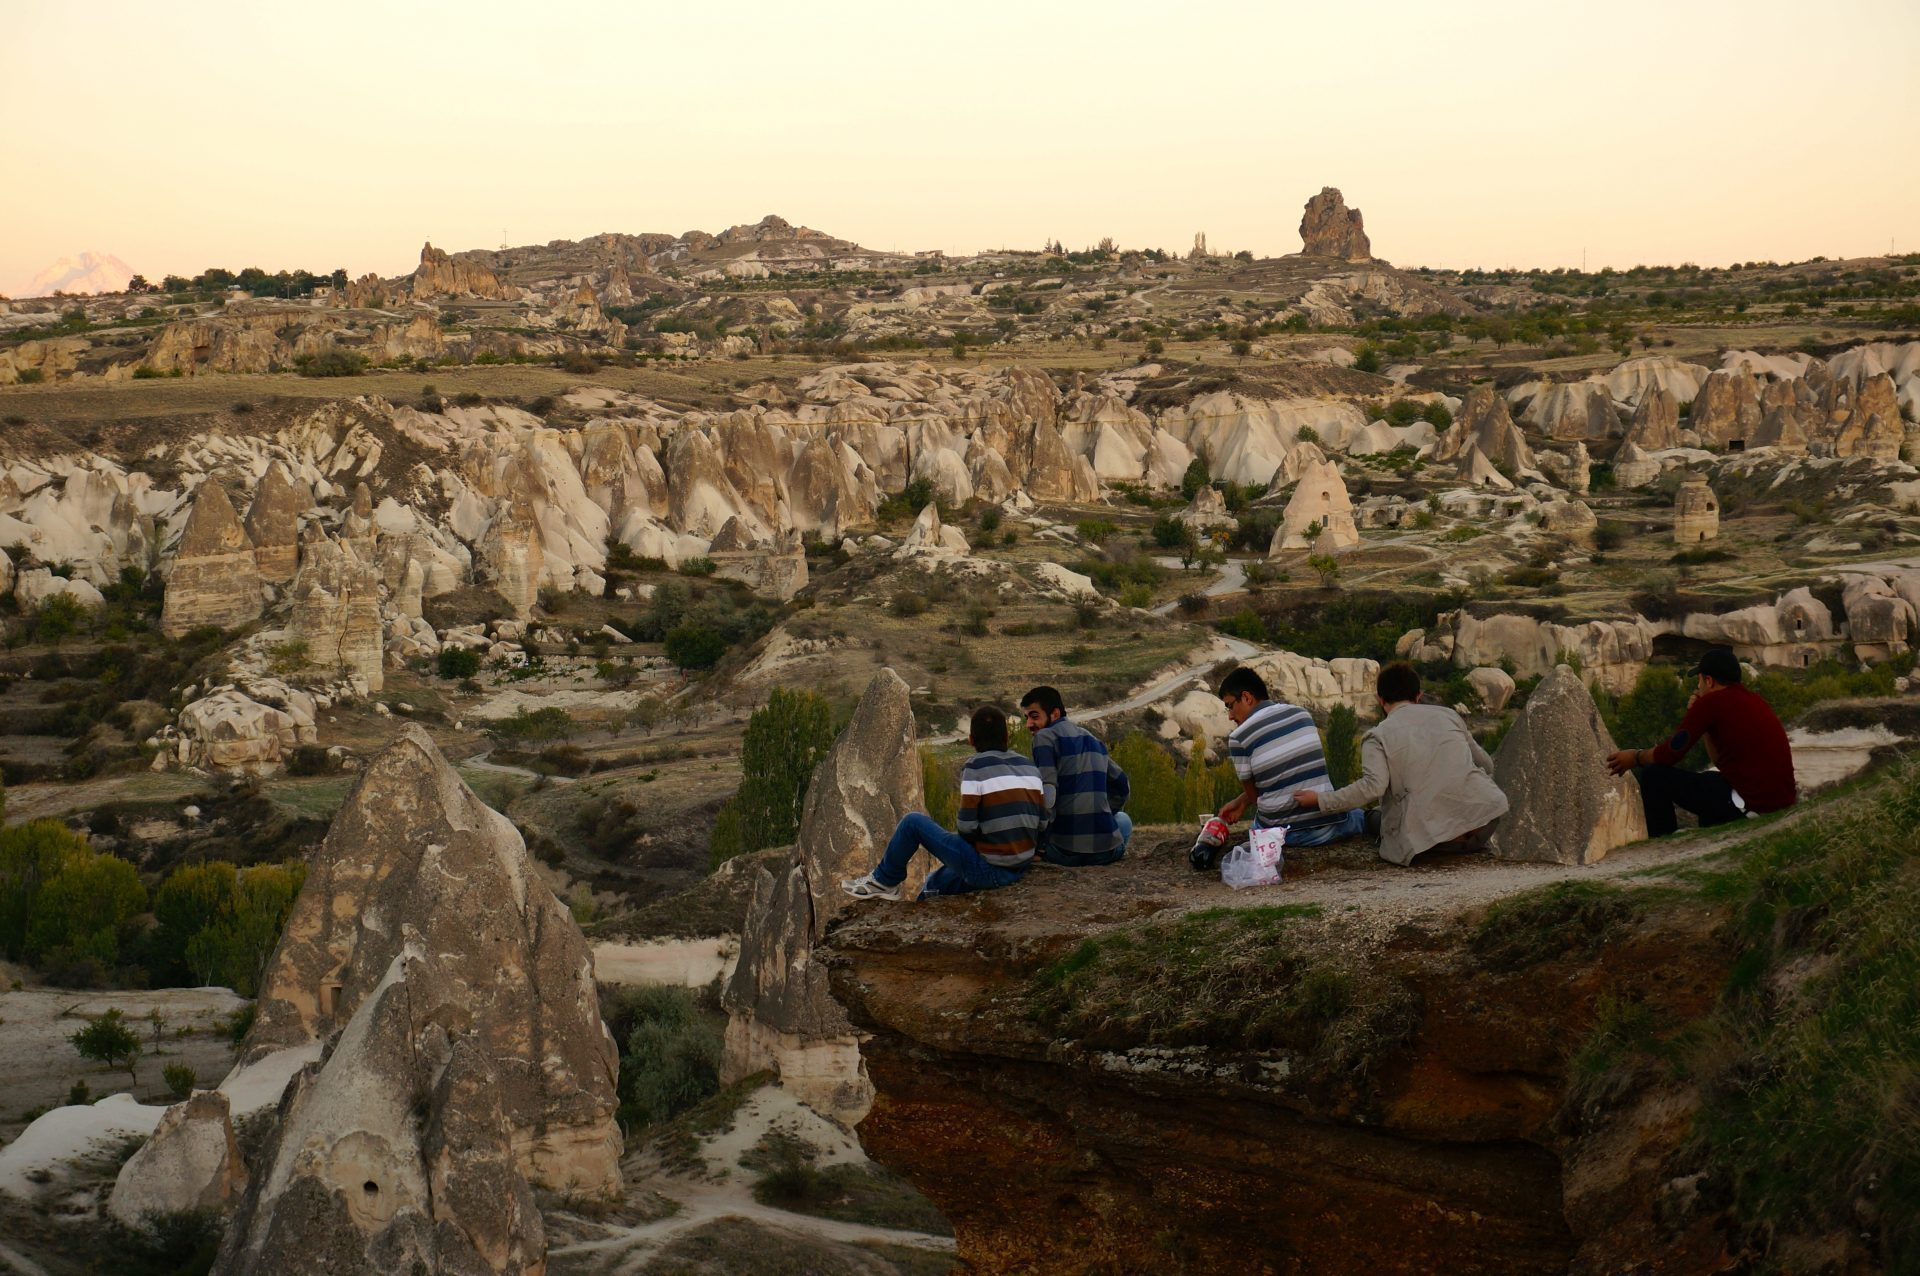 Budget Travel Cappadocia Guide: Top 5 Things to Do